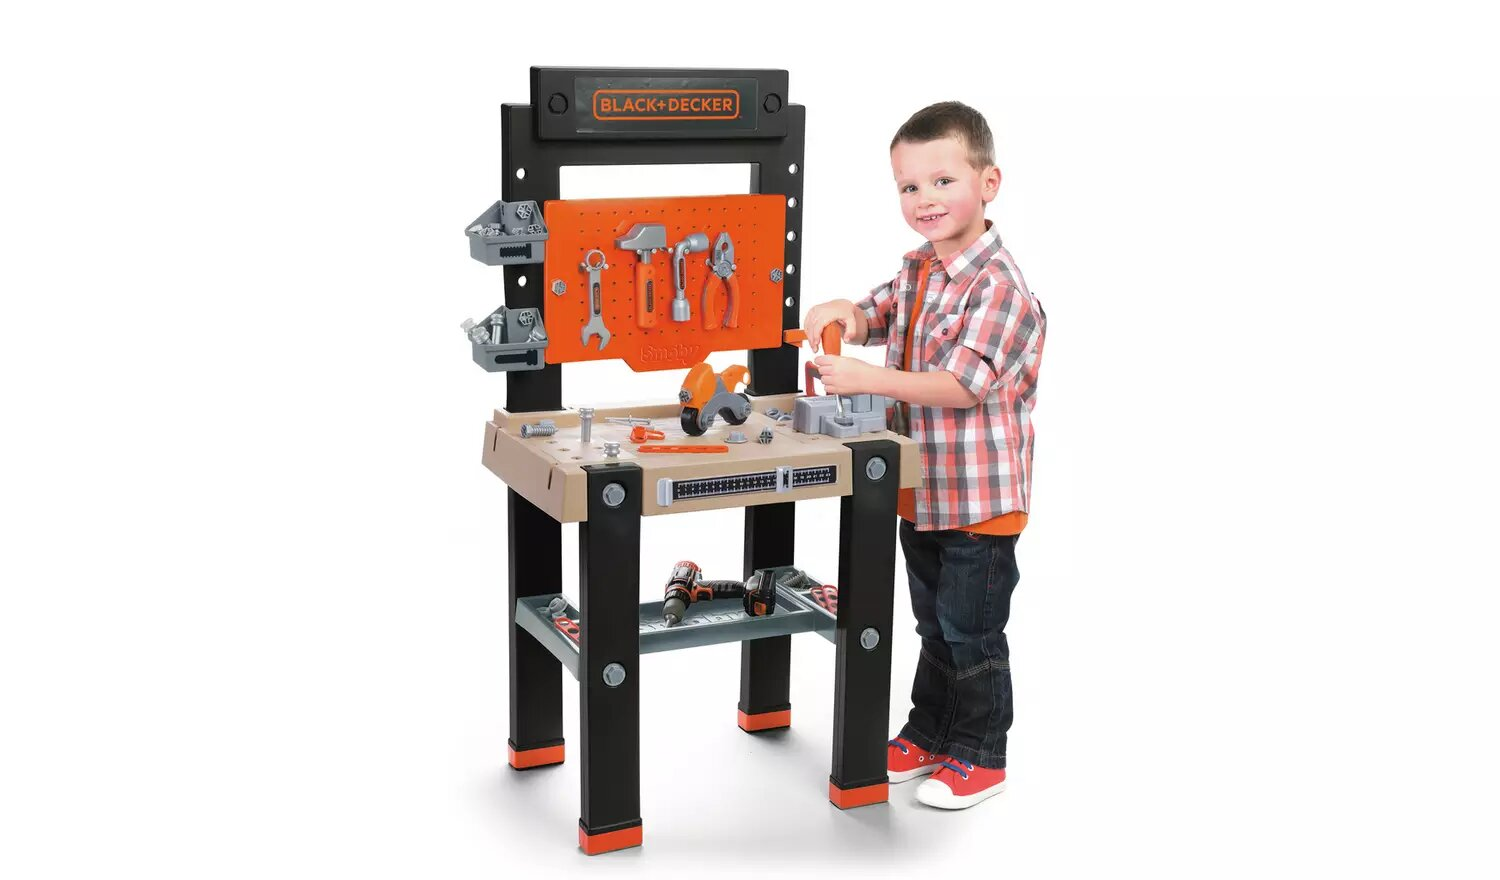 Smoby Giant Black And Decker Toy Workbench.